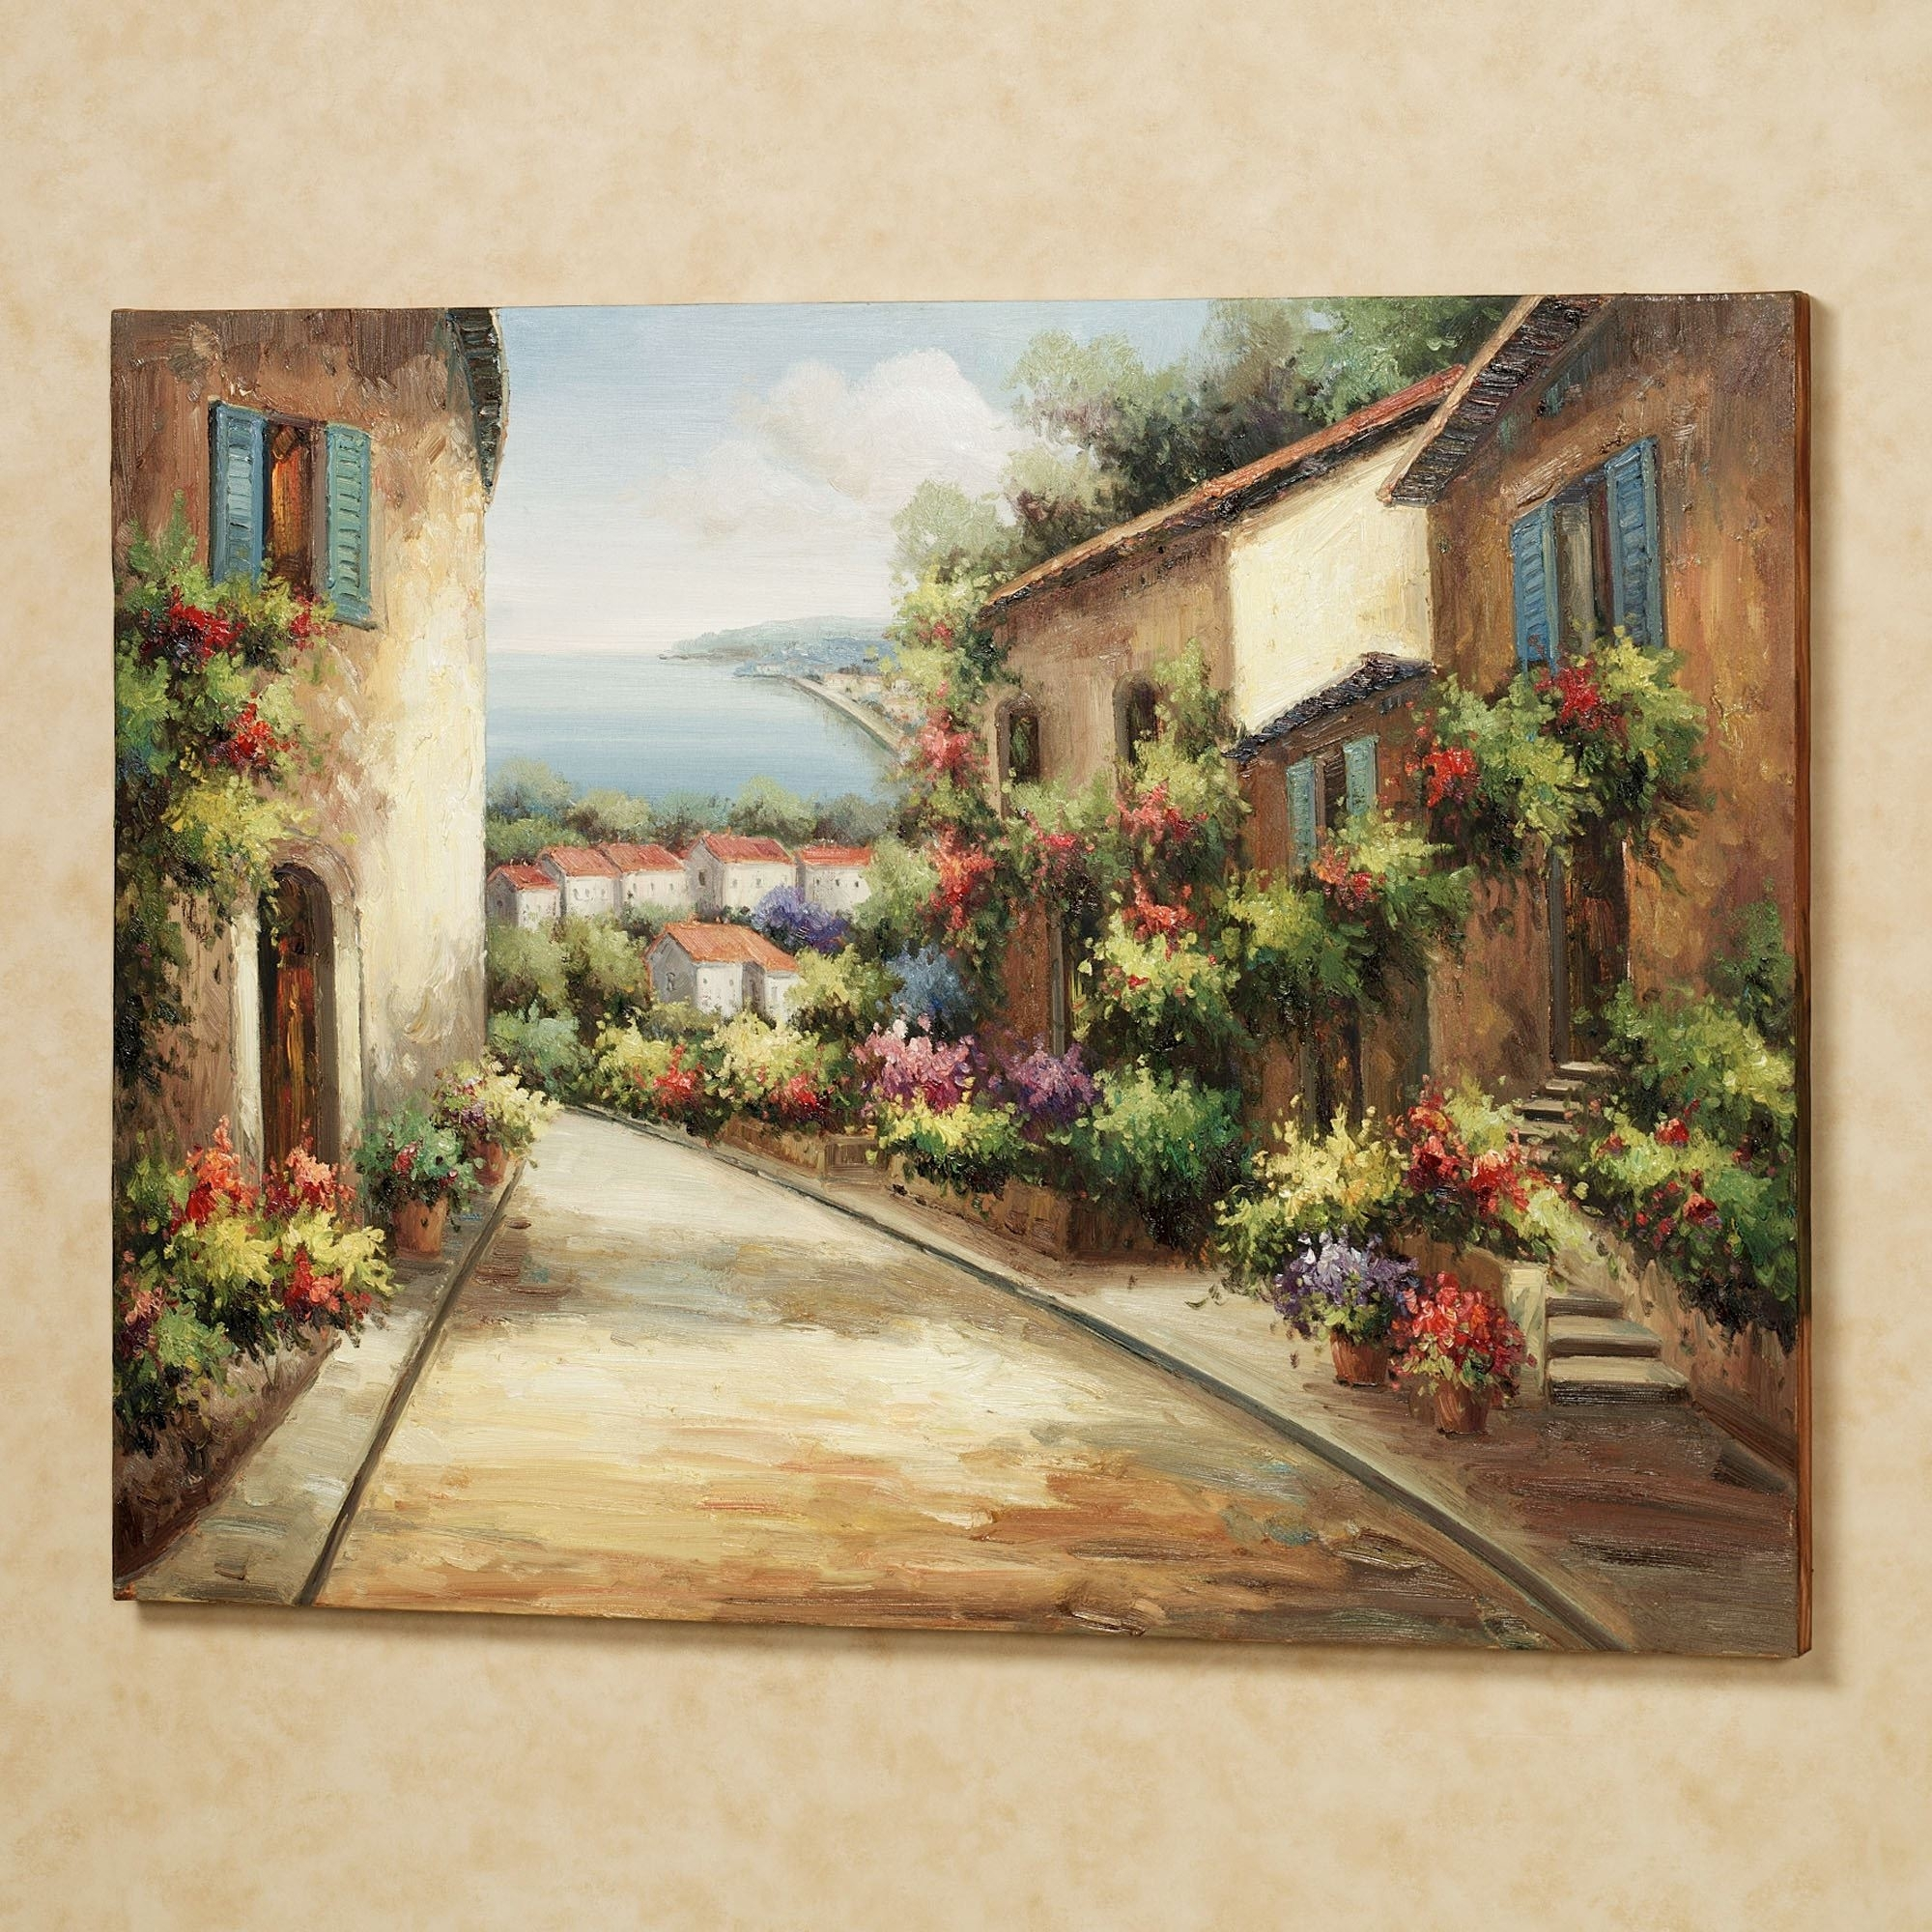 X Trend Tuscan Wall Art   Home Design And Wall Decoration Ideas With Tuscan Wall Art (Photo 3 of 20)